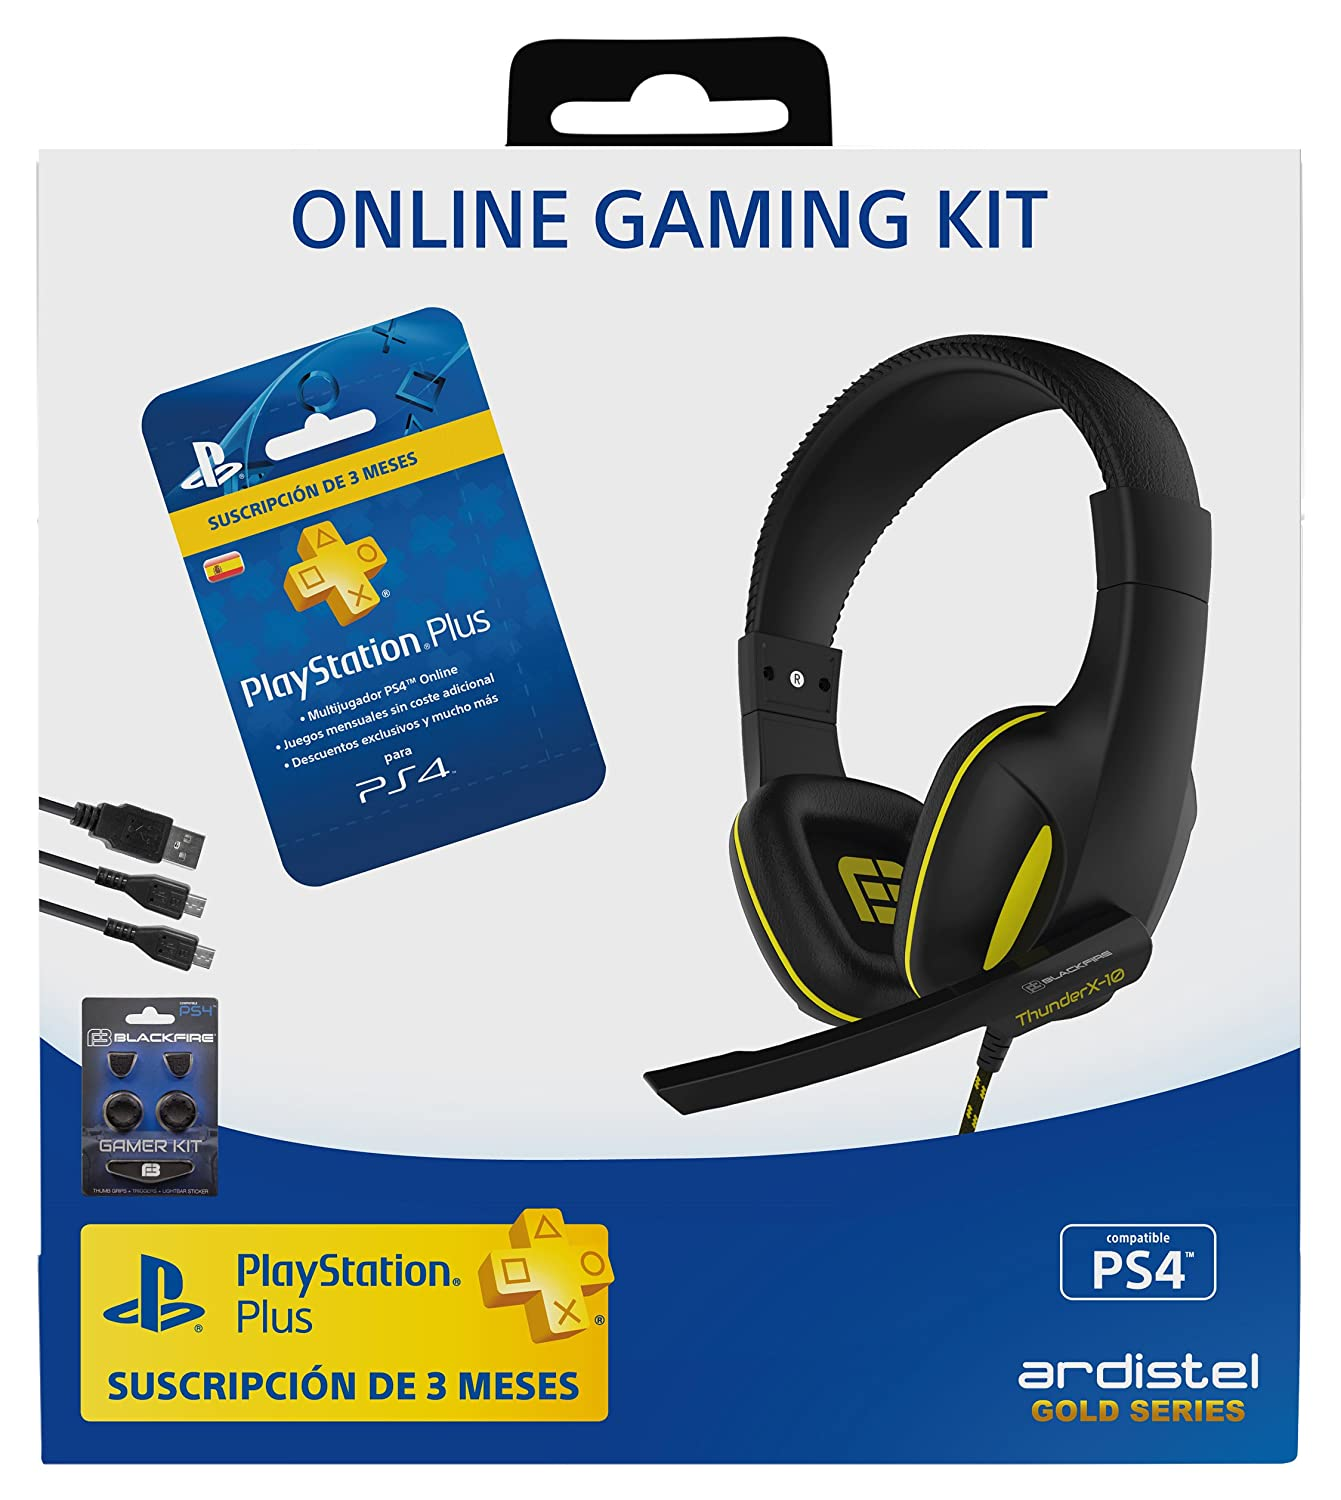 Ardistel - Online Gaming Kit Dual A3 (PS4) - Gaming Headset ...